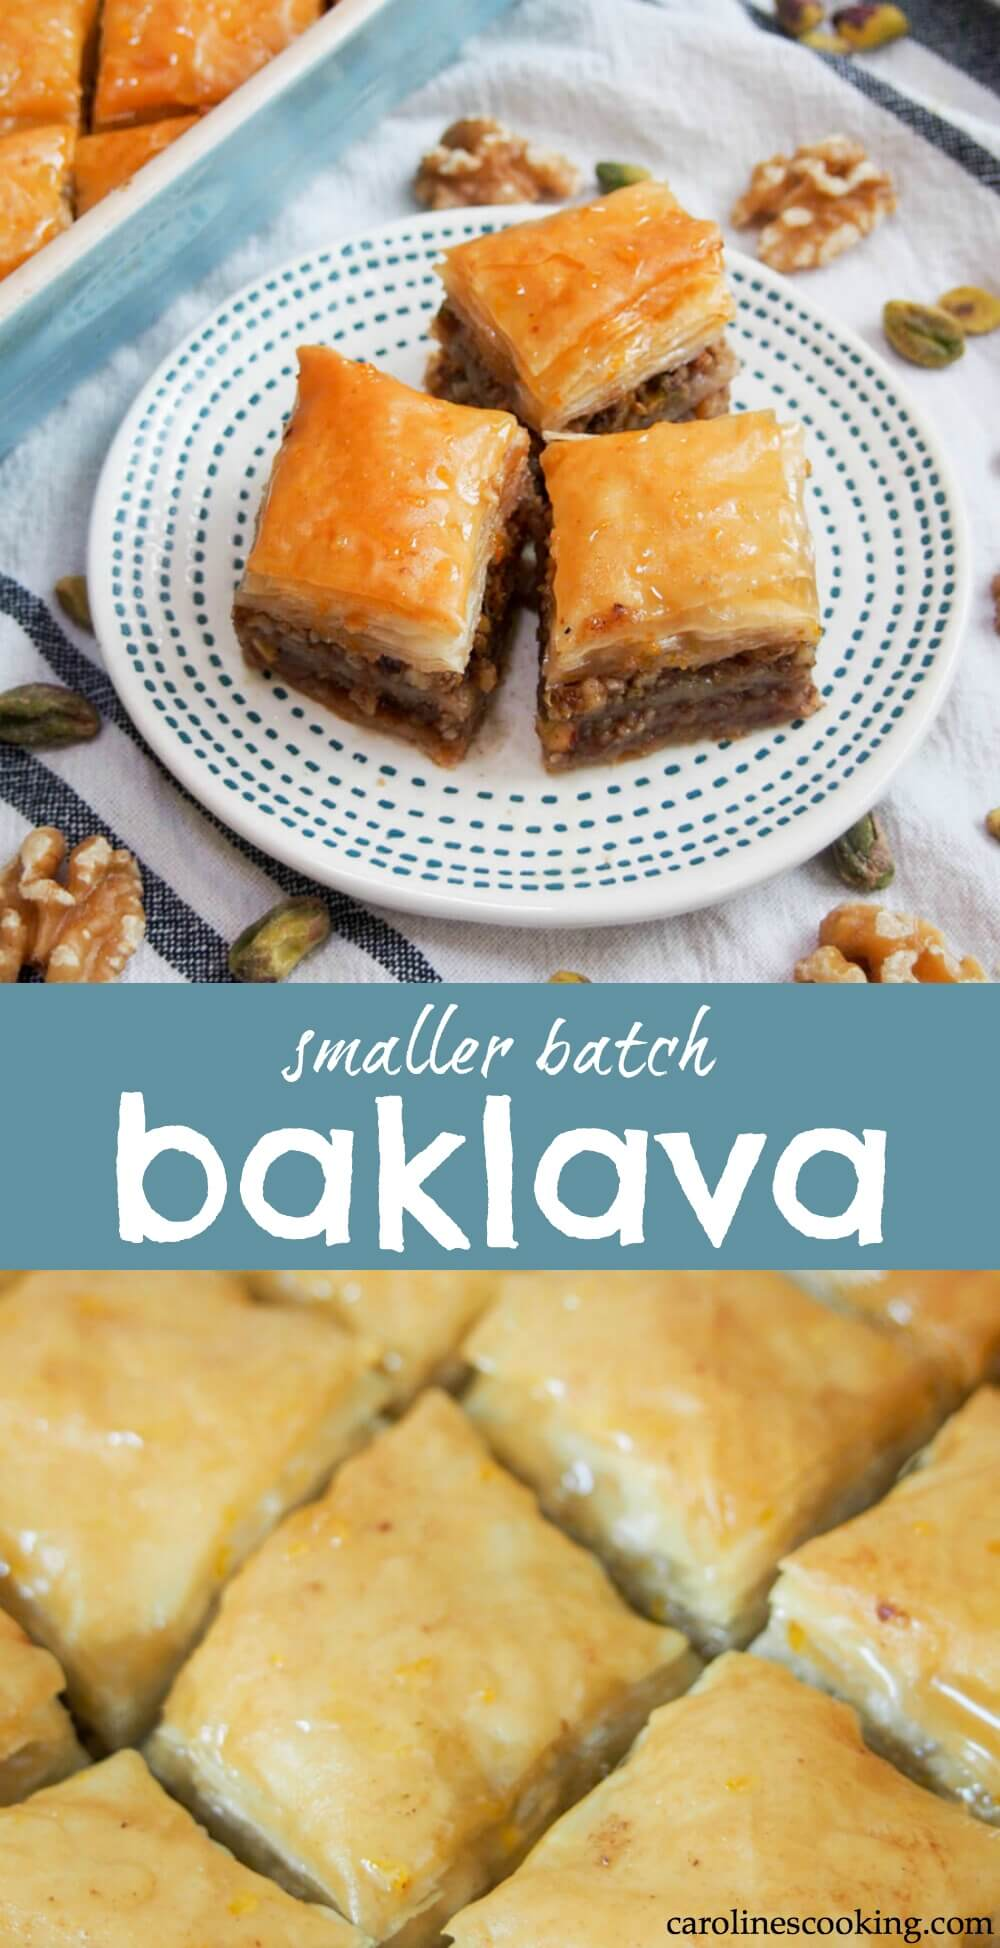 Baklava is such a classic sweet treat enjoyed in Greece, Turkey and across the broader Eastern Med. The combination of sticky, crisp pastry and nuts is addictively good! This baklava recipe will guide you through making a smaller batch, perfect for when you don't need a huge quantity. #baklava #greek #filo #pastry #walnut